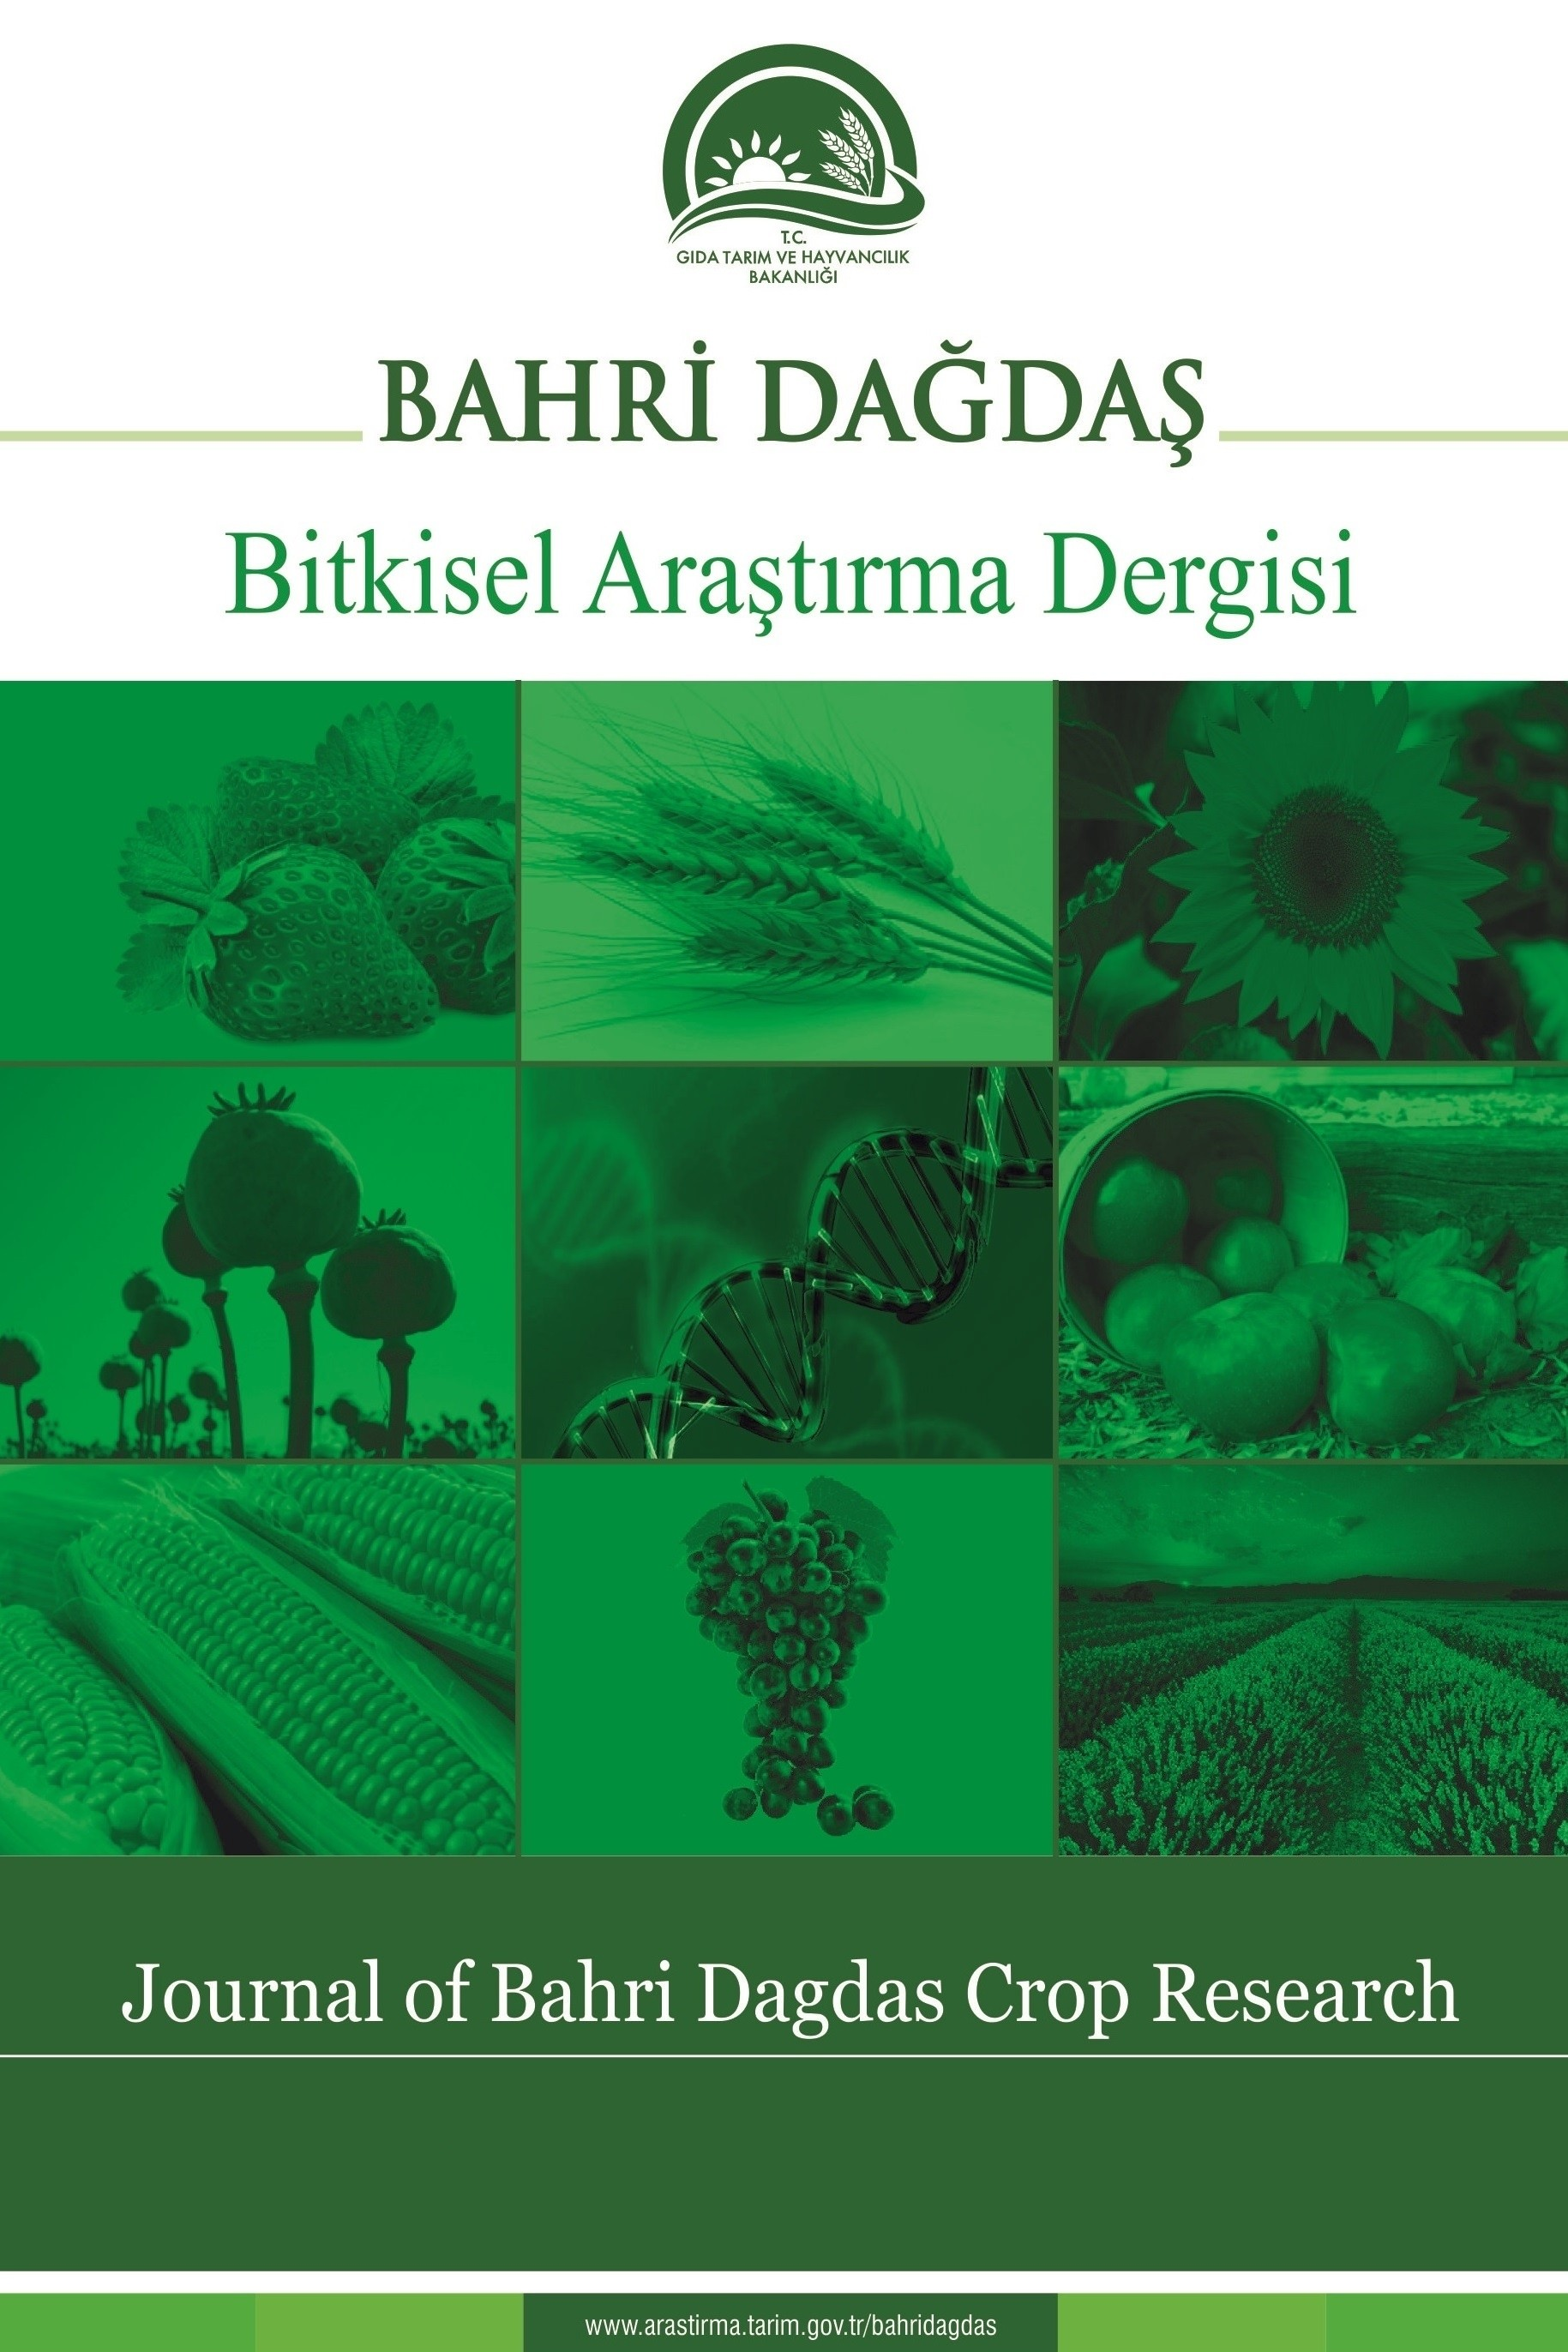 Journal of Bahri Dagdas Crop Research